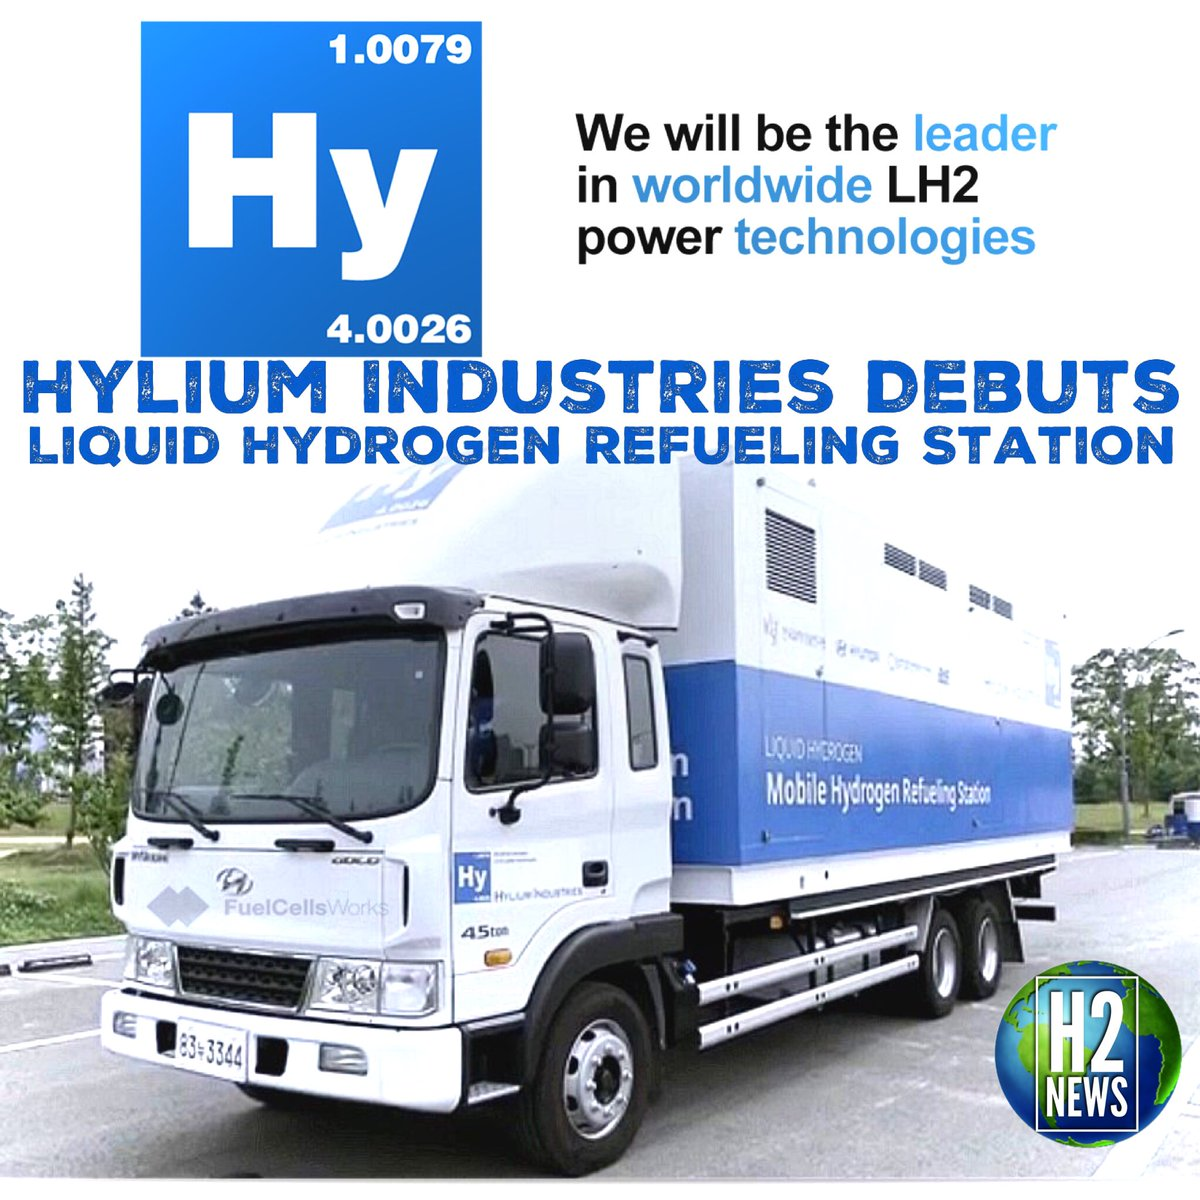 H2 Fuel Cell News On Twitter Please Welcome The Worlds First Freight Truck Pump 5 Ton Can Store Up To 7500 Liters Of Lh2 And 100 Cars Day 900bar Eliminates Need For